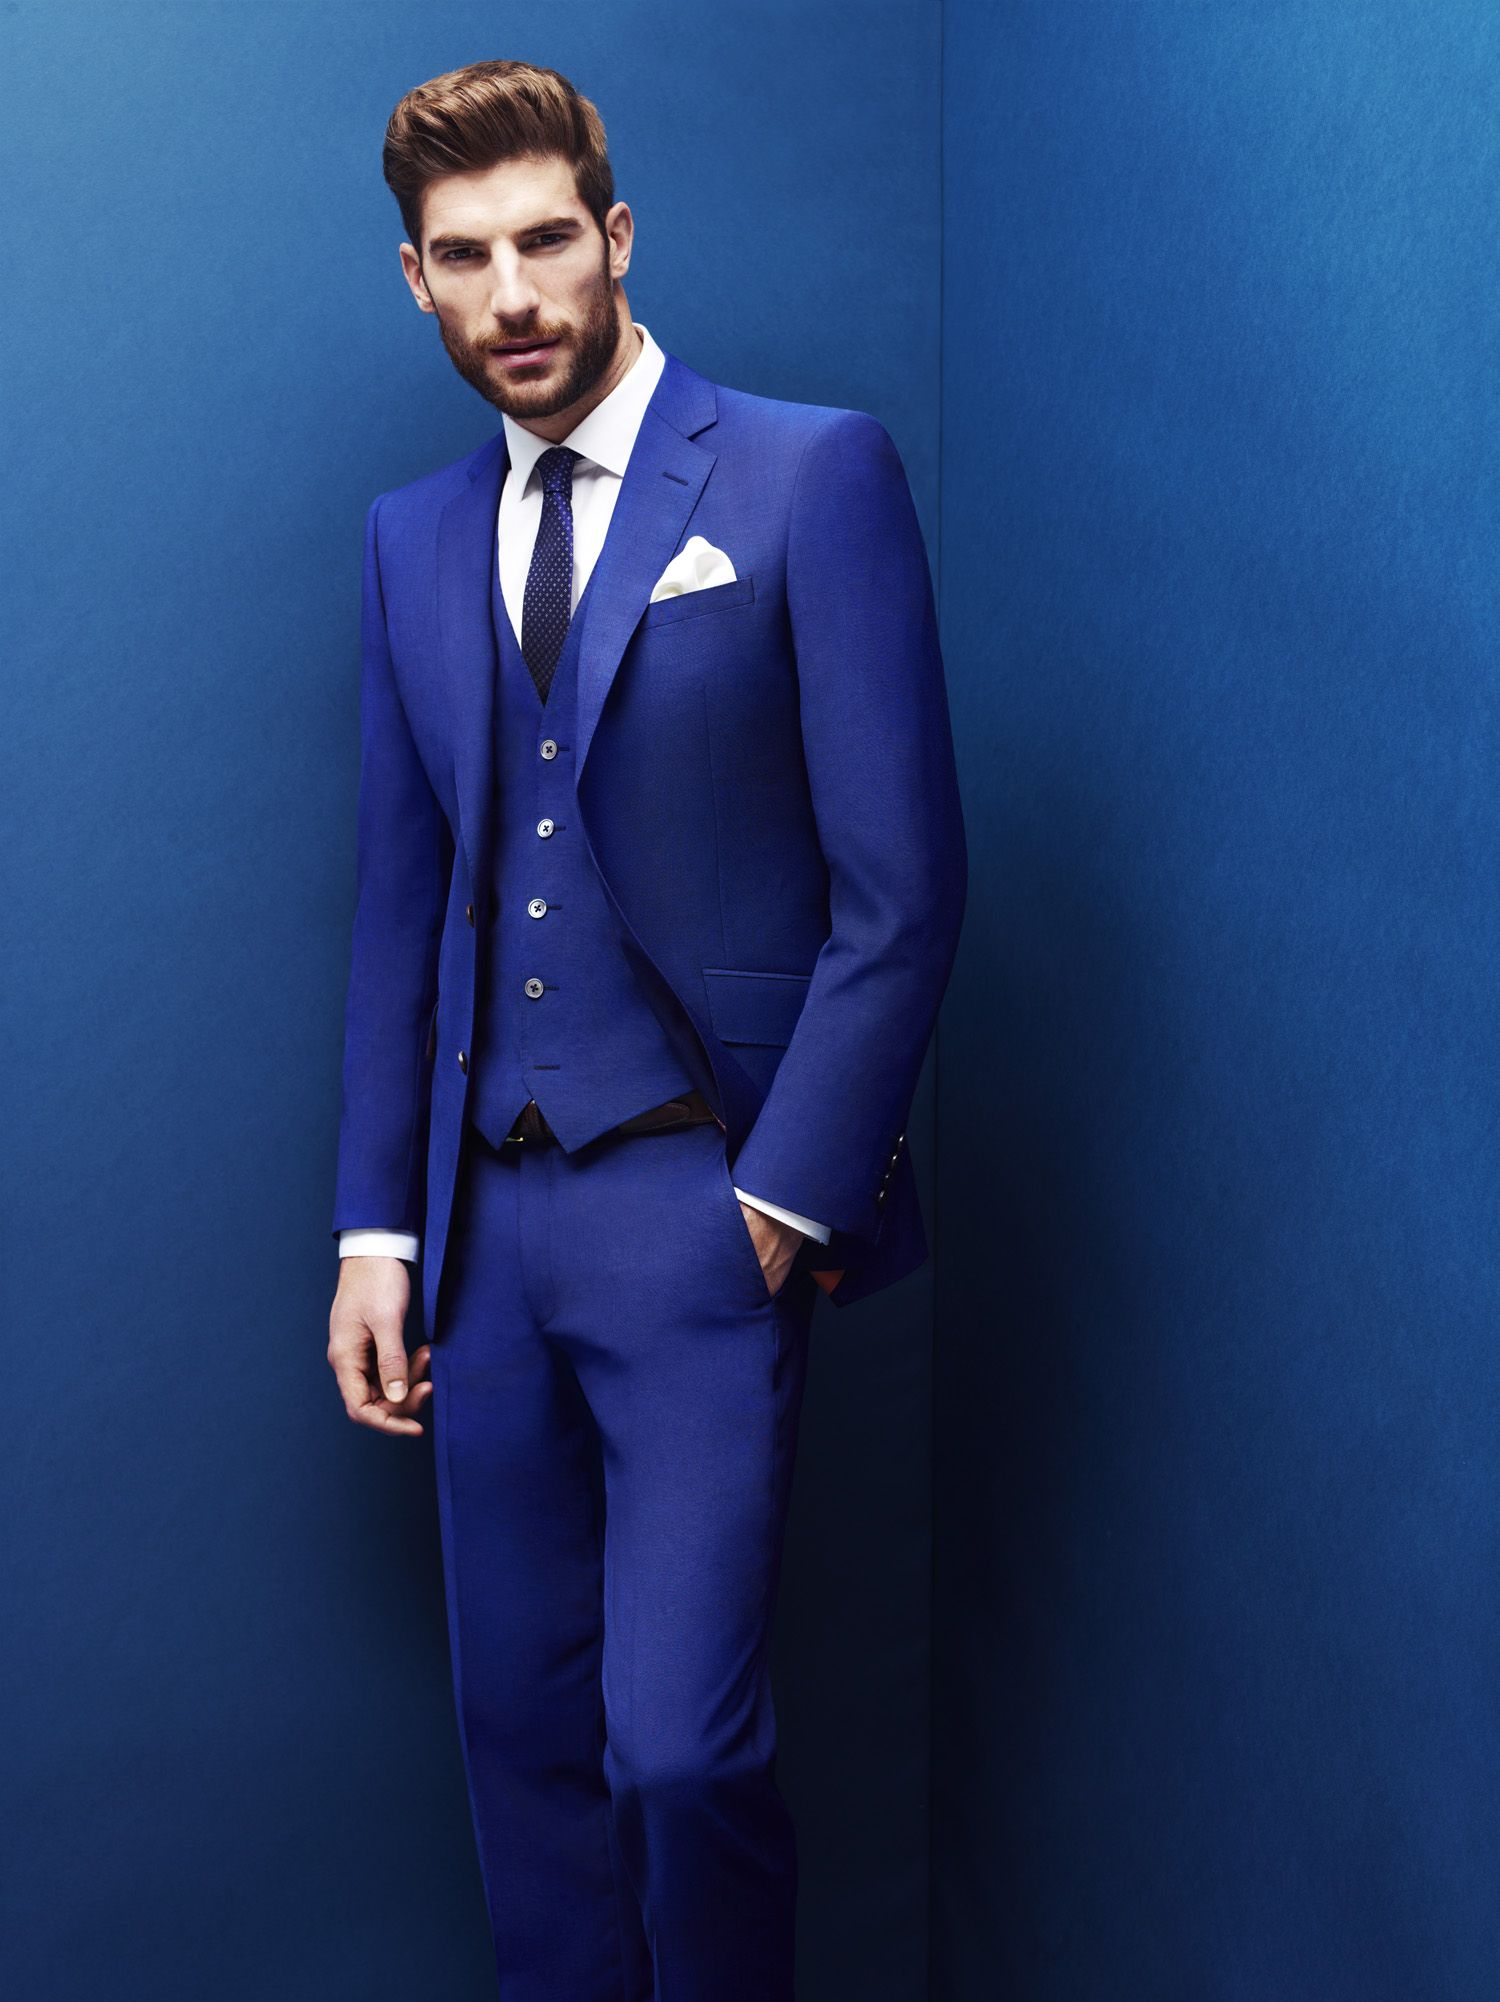 2-Piece Moss 1851 Electric Blue Suit with matching Bespoke